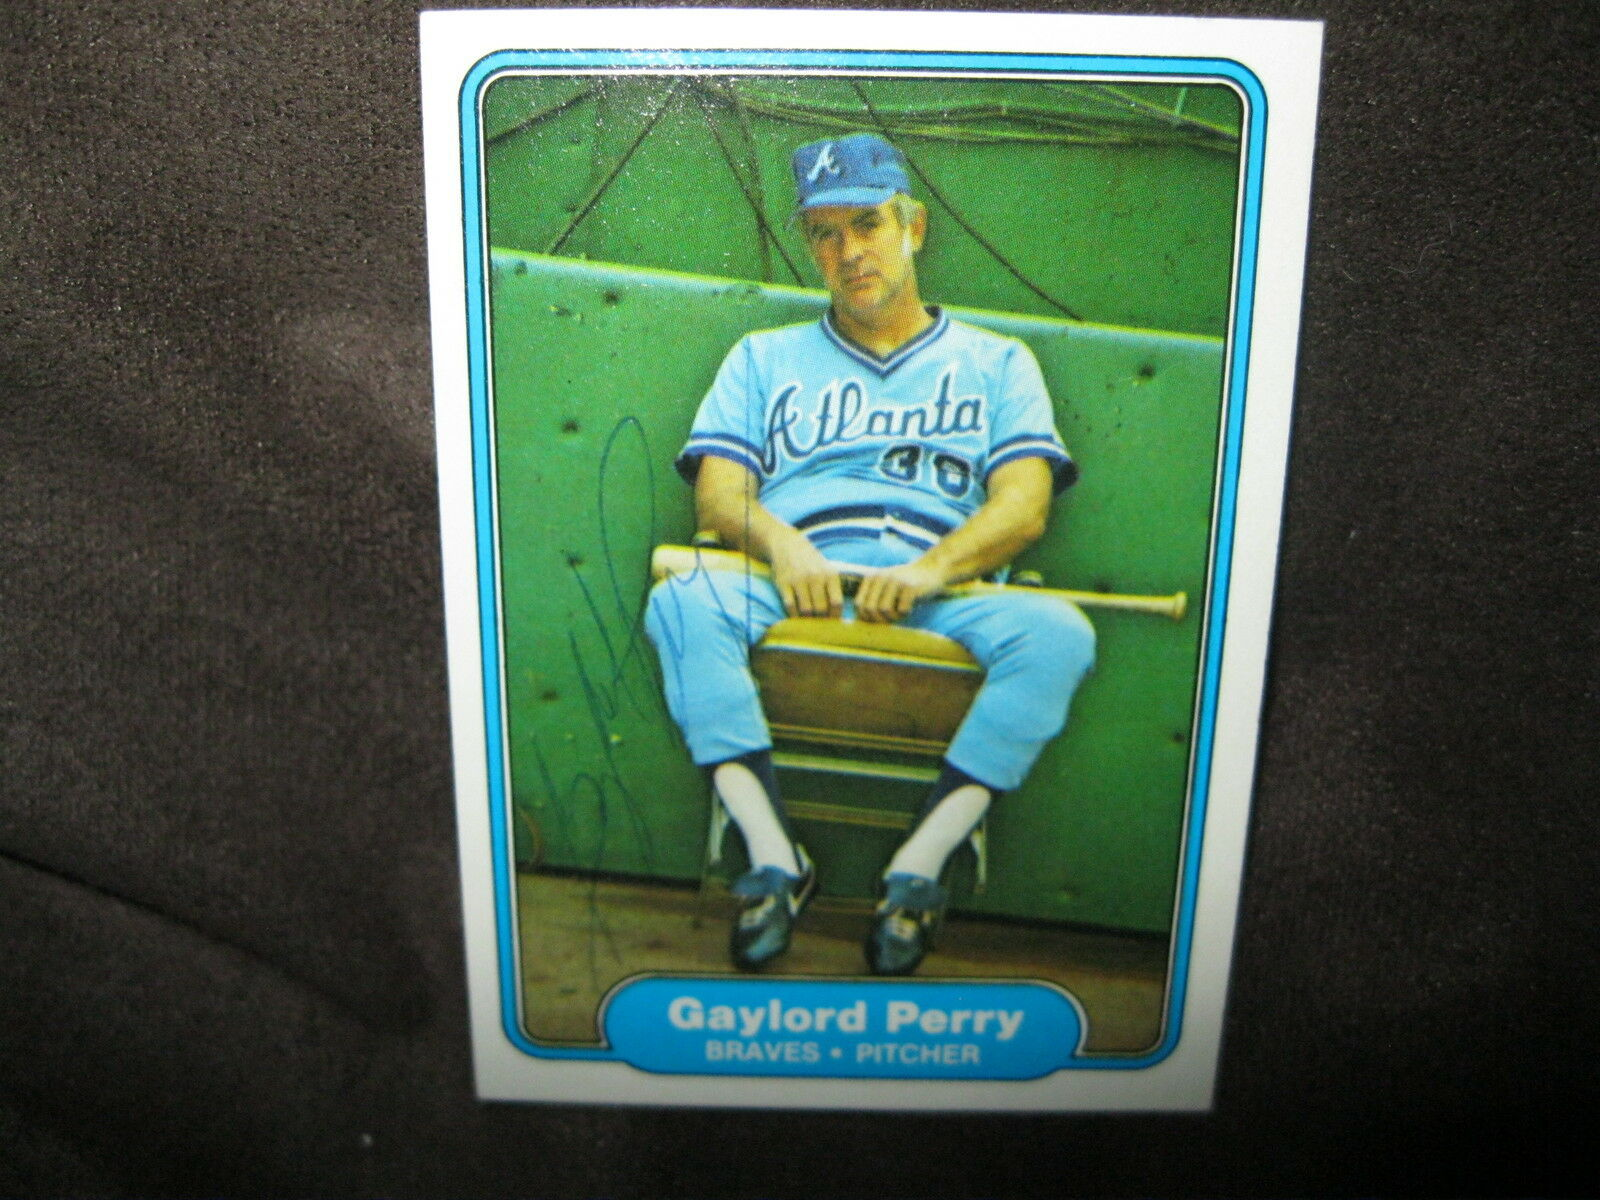 GAYLORD PERRY AUTOGRAPHED 1982 FLEER BASEBALL TRADING CARD WITH COA-BRAVES PITCH